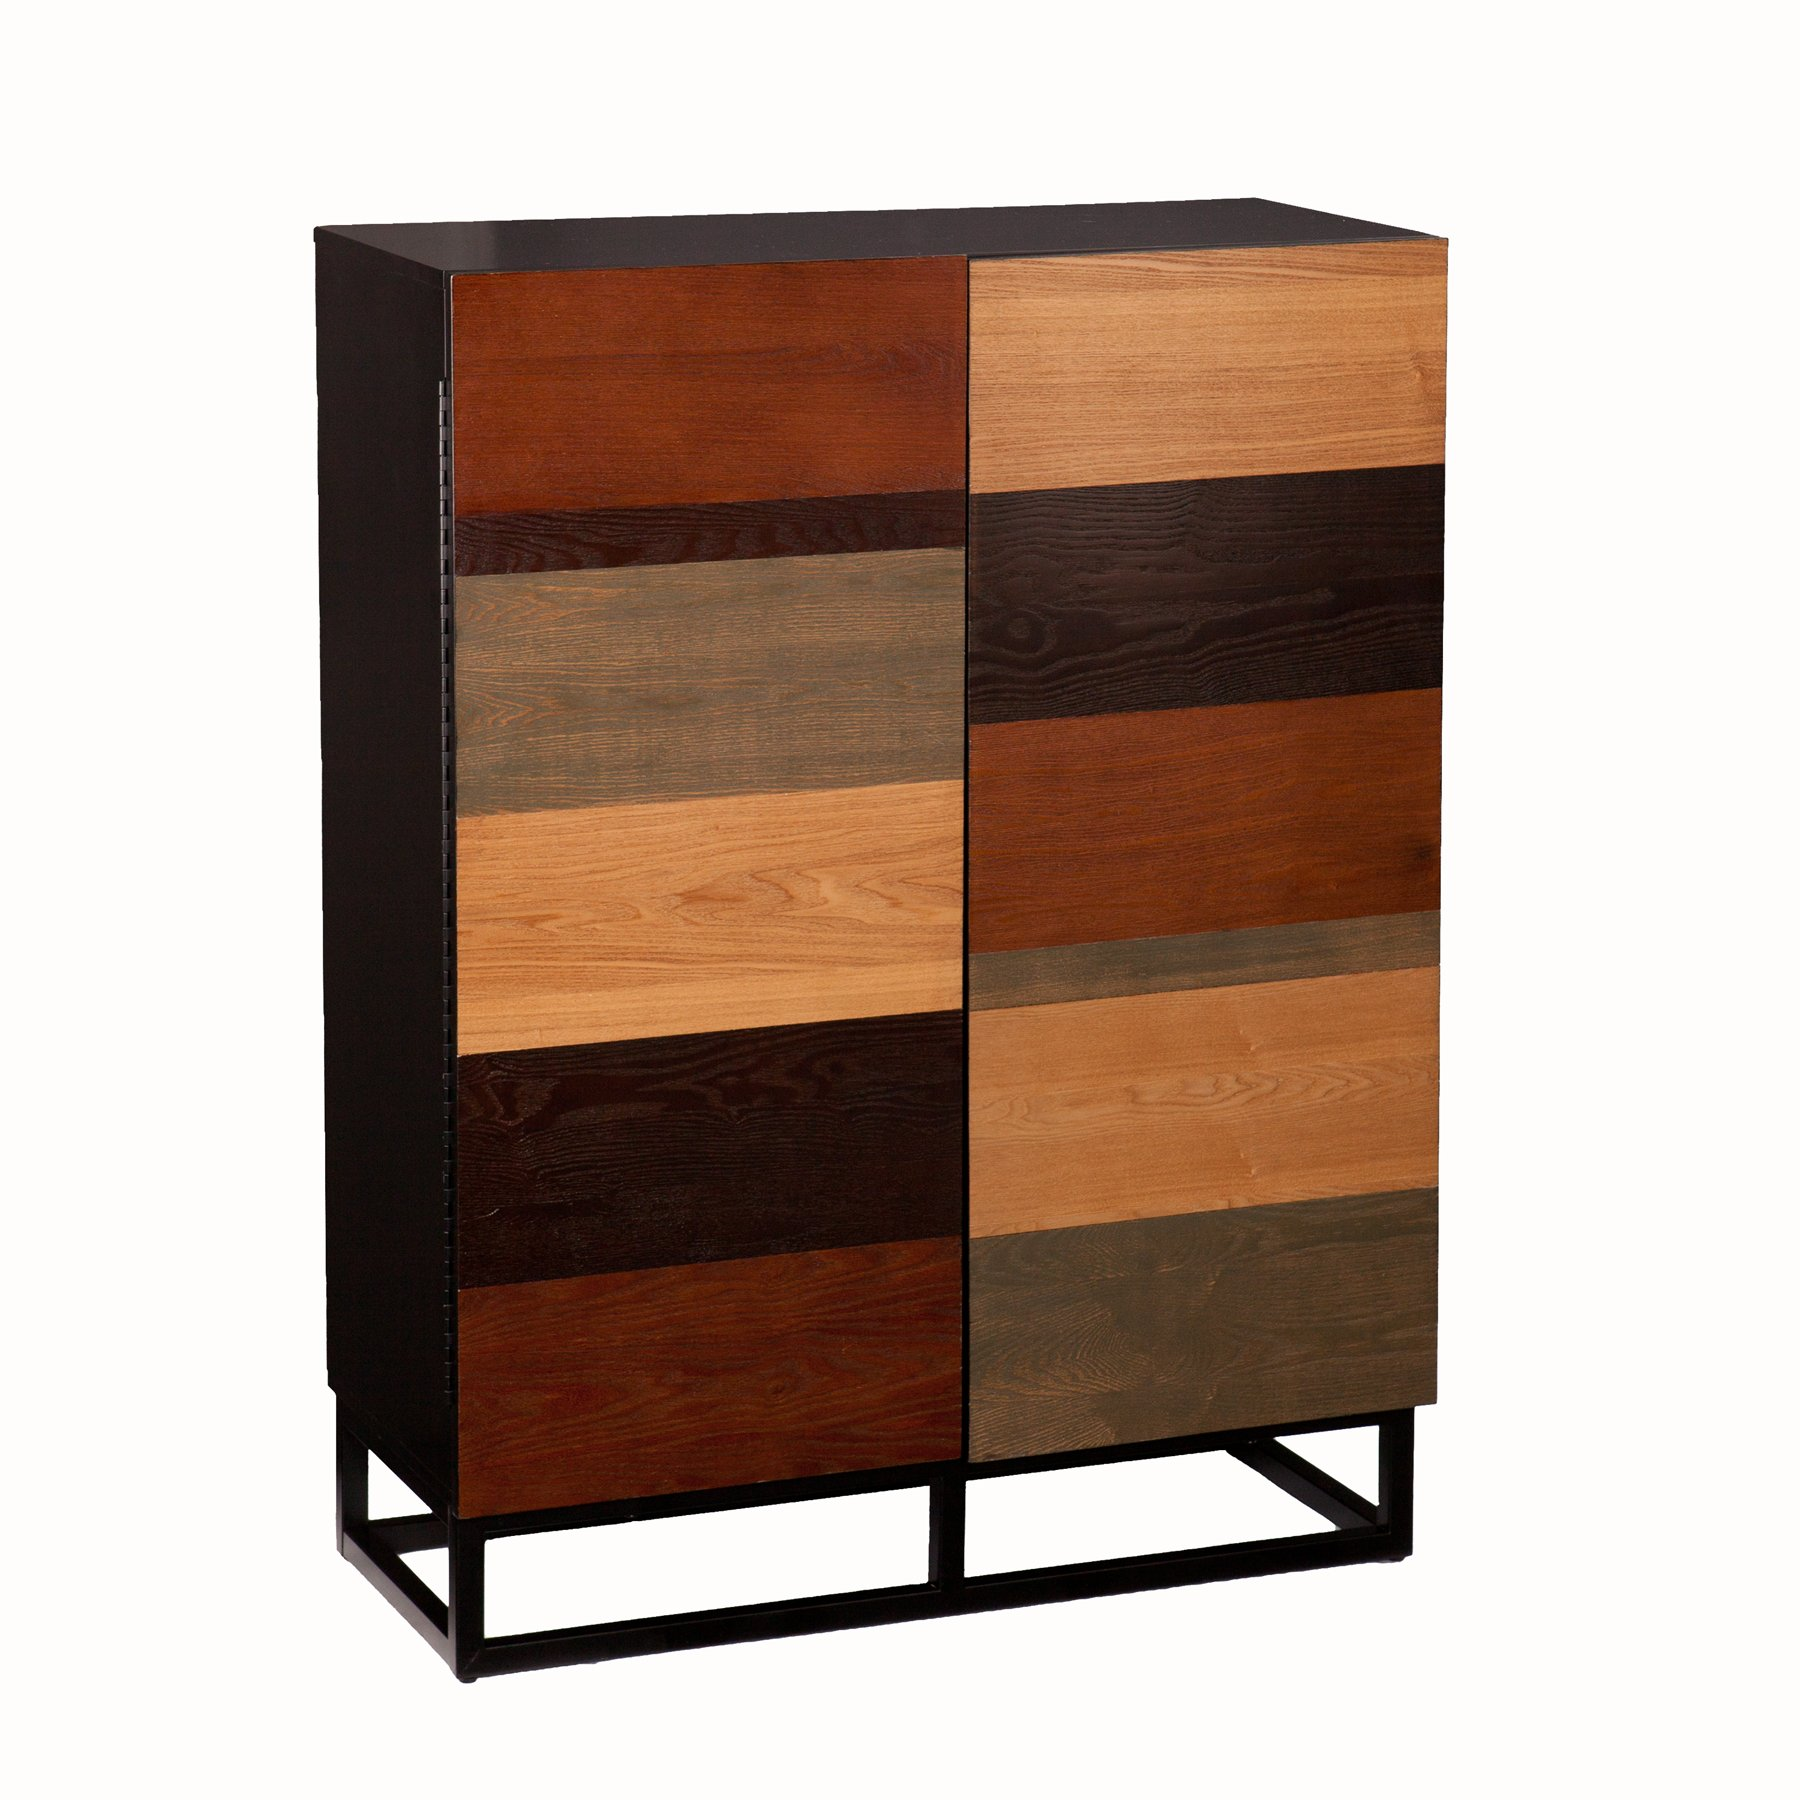 Southern Enterprises Multi Tone Bar Cabinet - Mixed Wood Finishes - Fixed Shelves w/Wine Compartments by Southern Enterprises